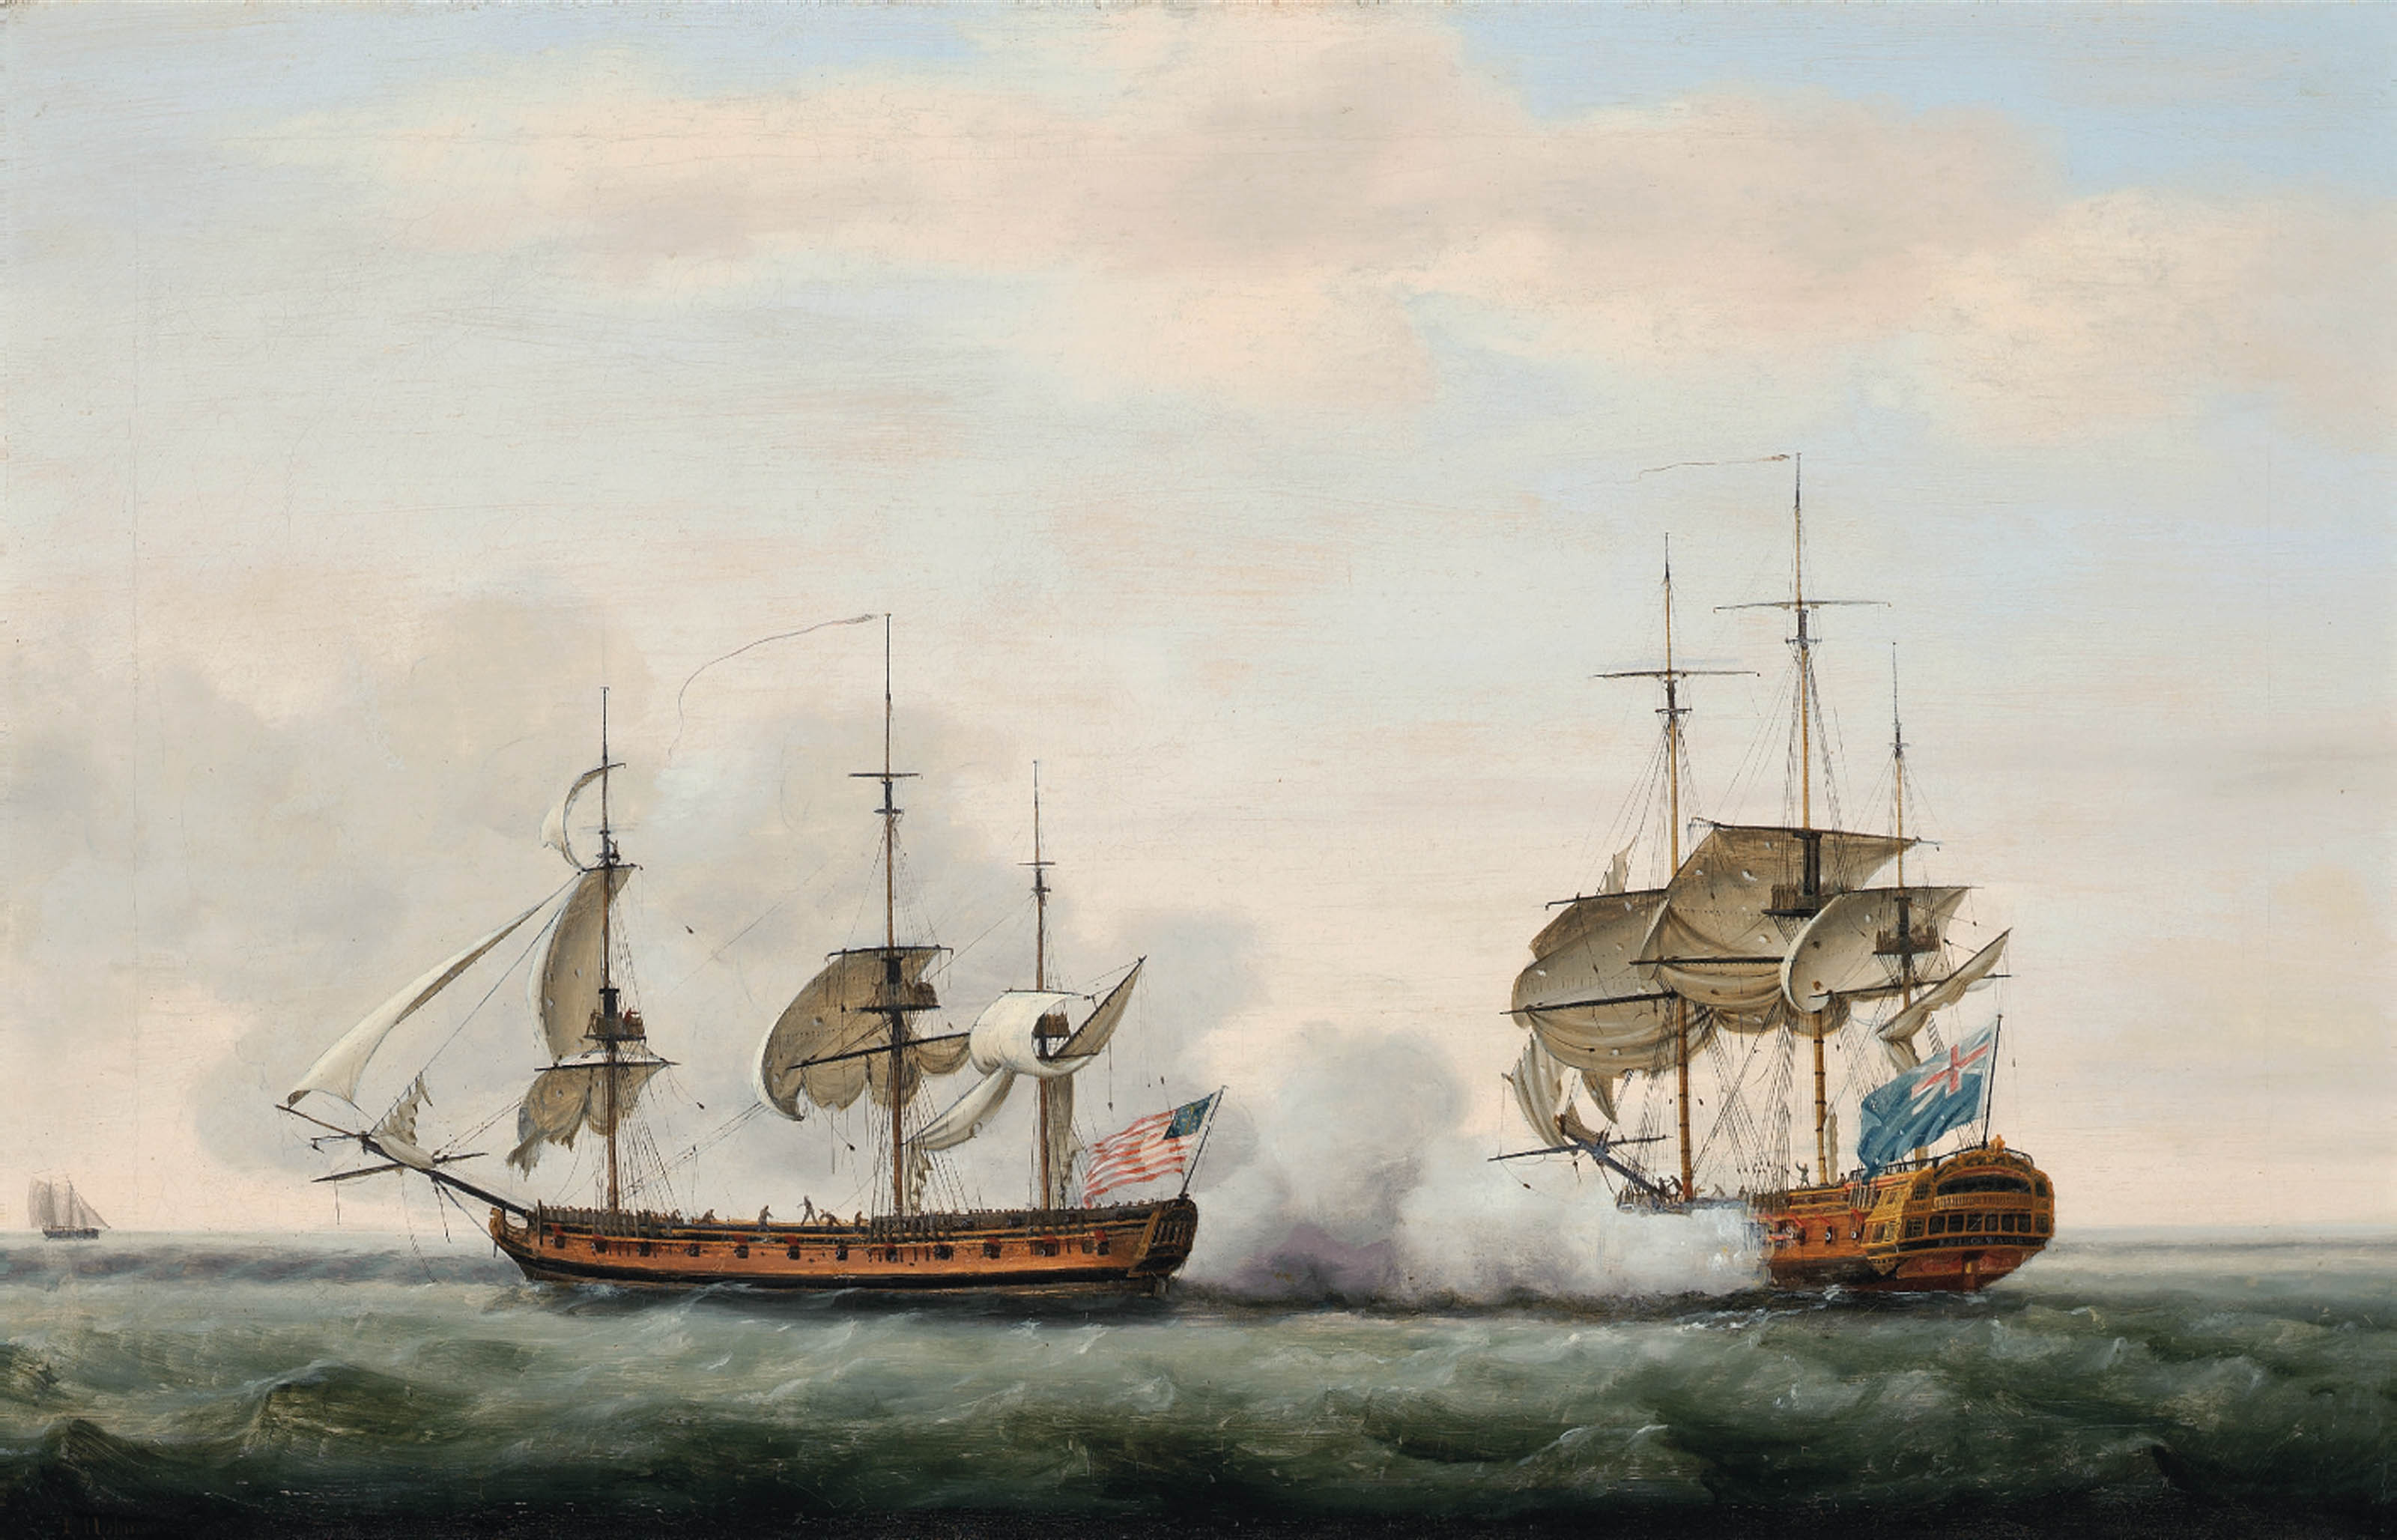 The East India Company's ship Bridgewater successfully defending her cargo from an attack by the American privateer Hampden on her way from St. Helena to England on 8th March 1779